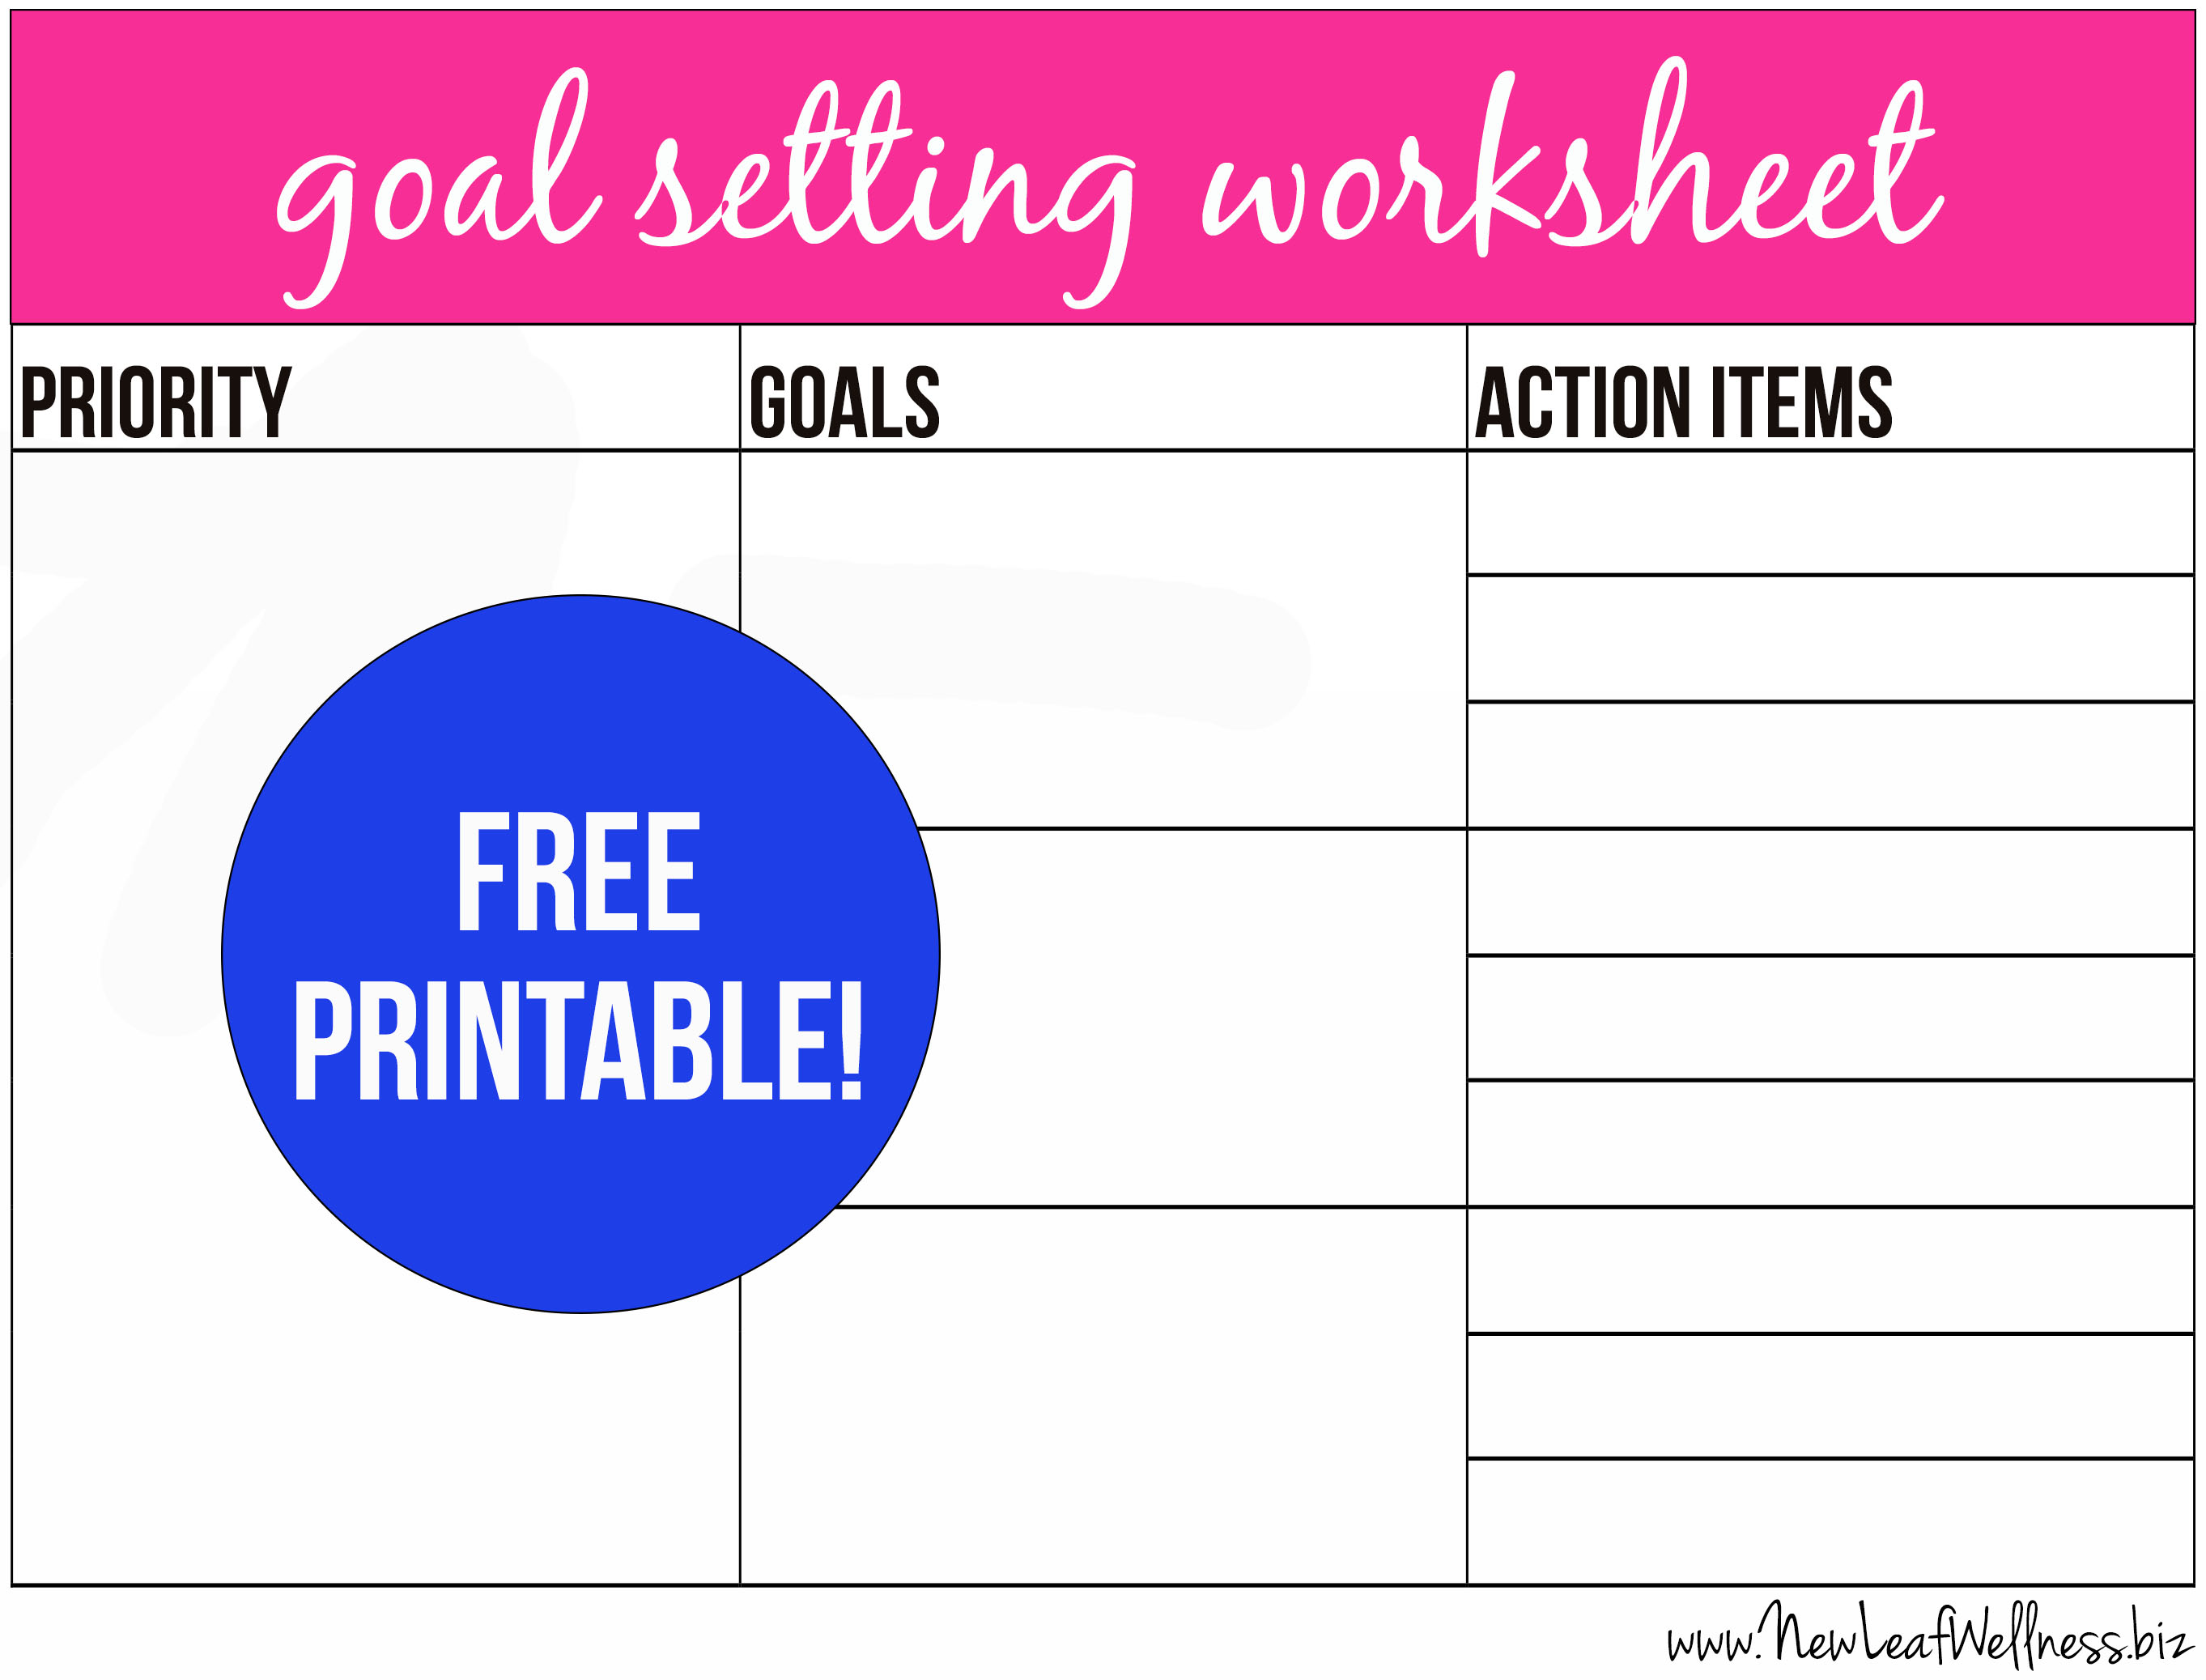 7 Images of Printable 2014 Goal Setting Worksheet